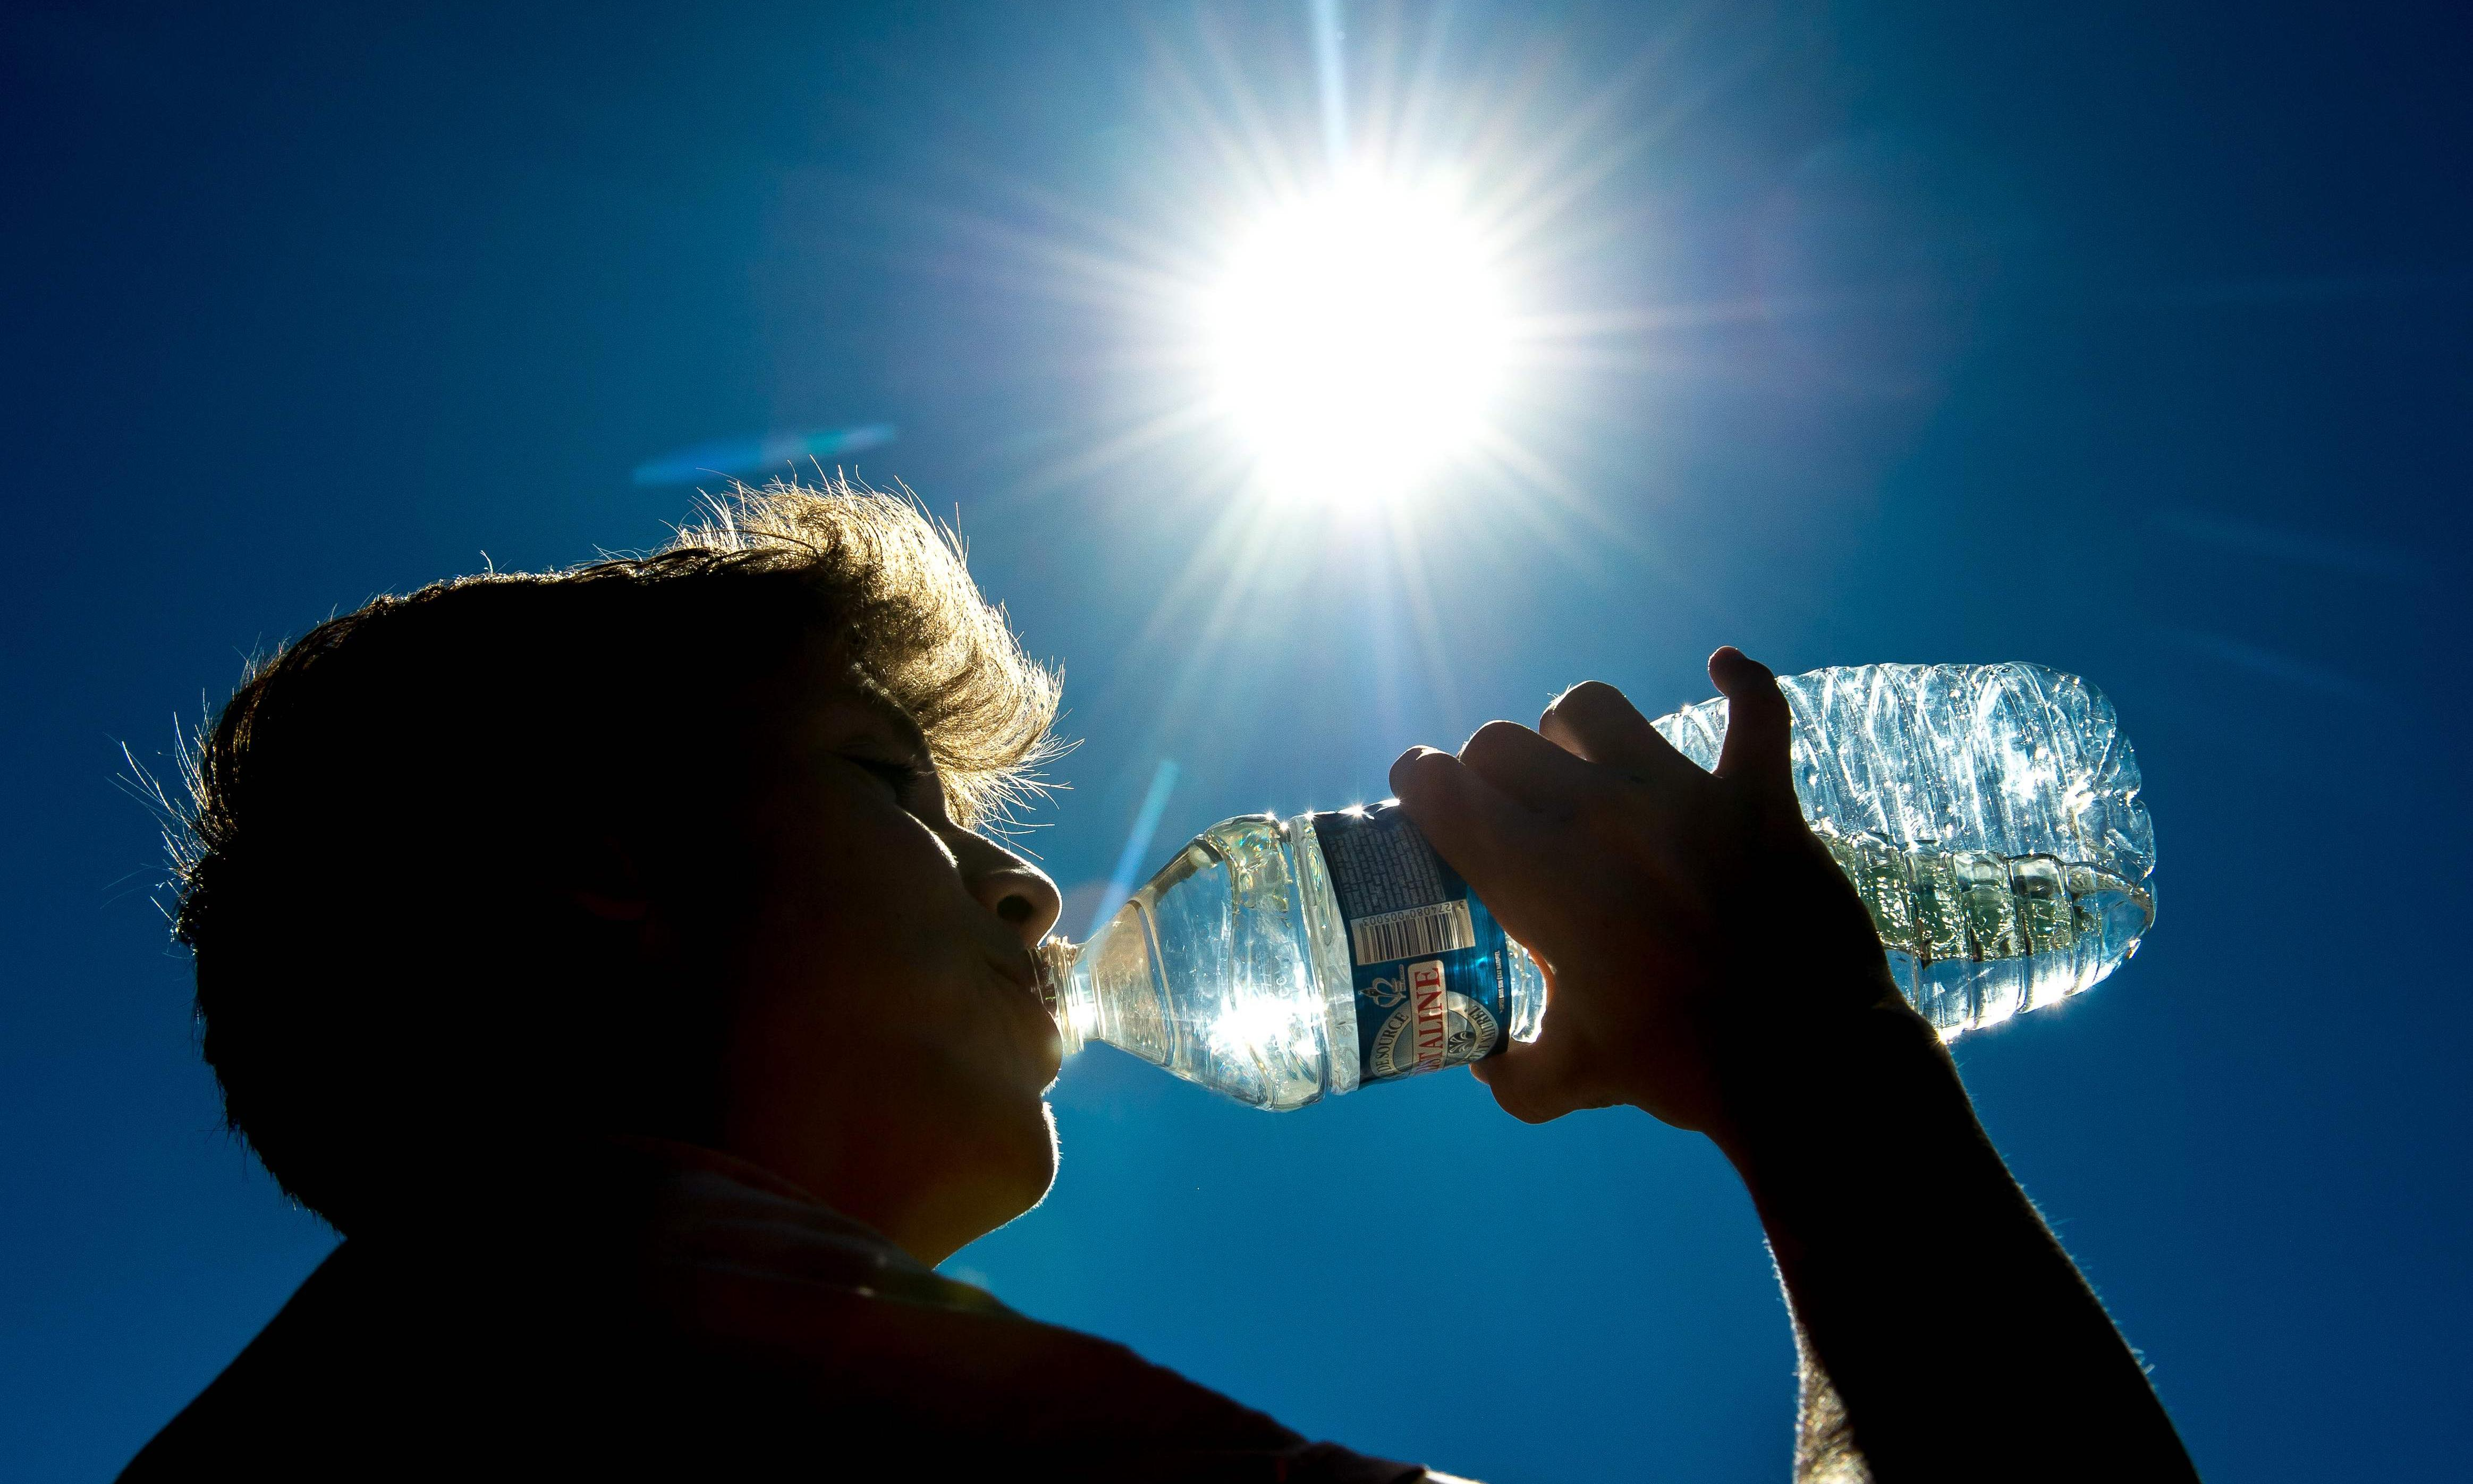 Continental Europe braced for 'potentially dangerous' heatwave